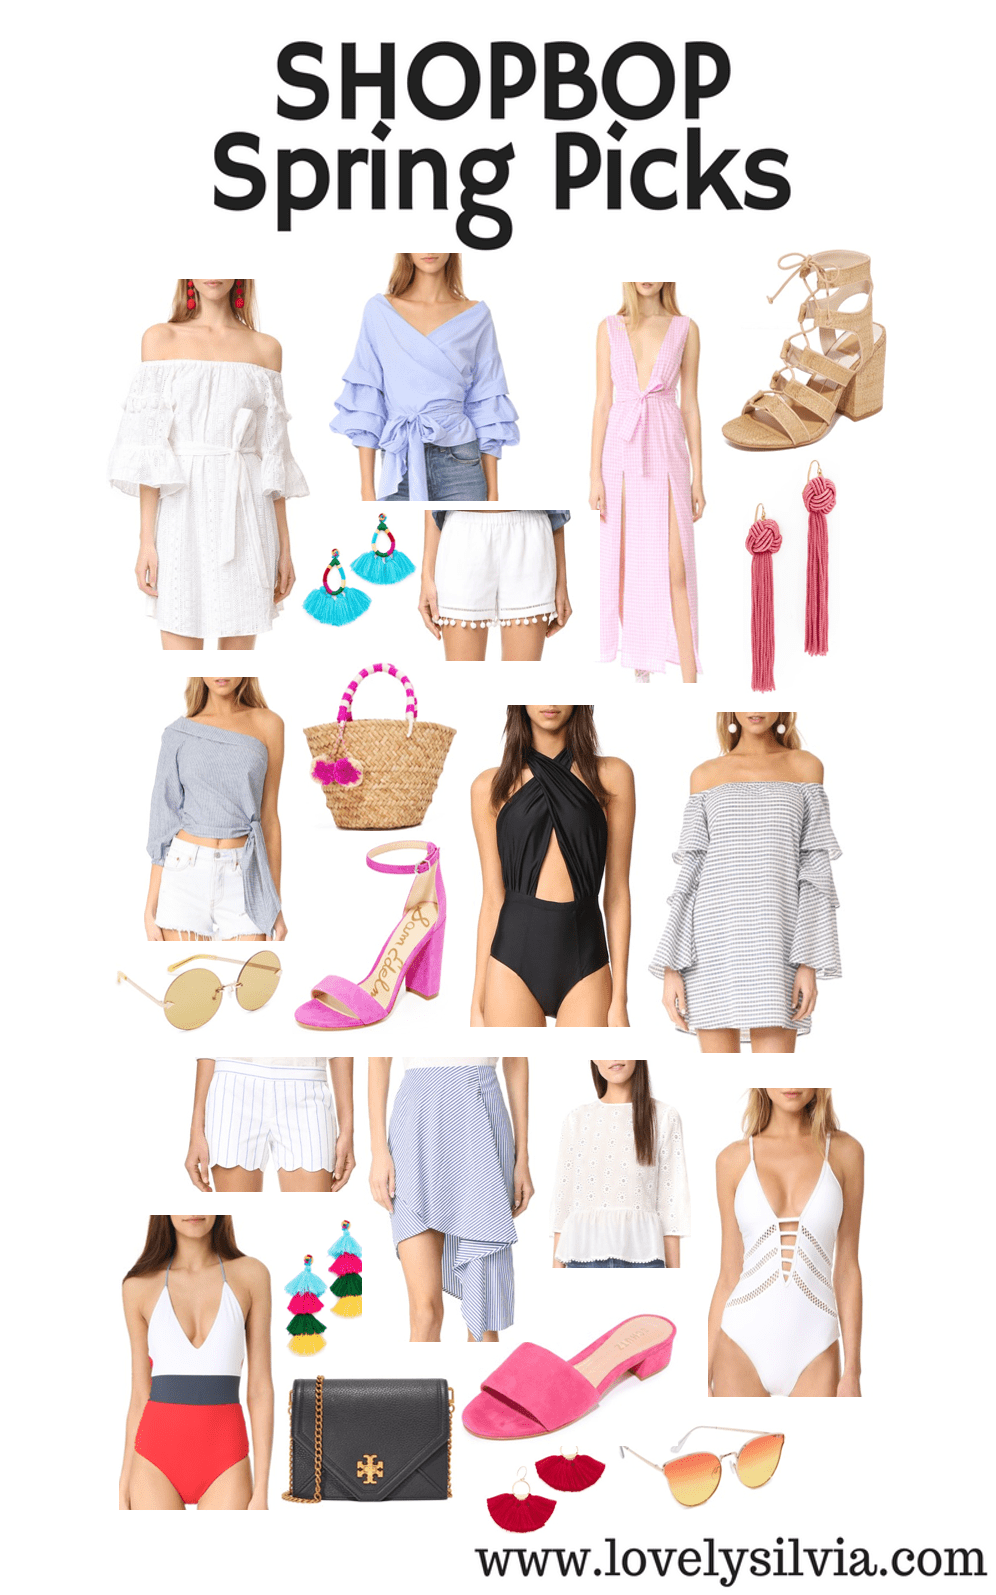 shopbop, shopbop sale, spring picks, spring 2017, shopbop shopping list, what to buy from shopbop, spring dress, spring tops, ruffle top, ots, off the shoulder dress, earrings, statement earrings, one piece swimsuit, one piece swim, mules, pink mules, chunky heels, beach bag, trendy wear, trendy bag, summer clothes, what to wear for the summer, outfit inspiration, dress inspiration